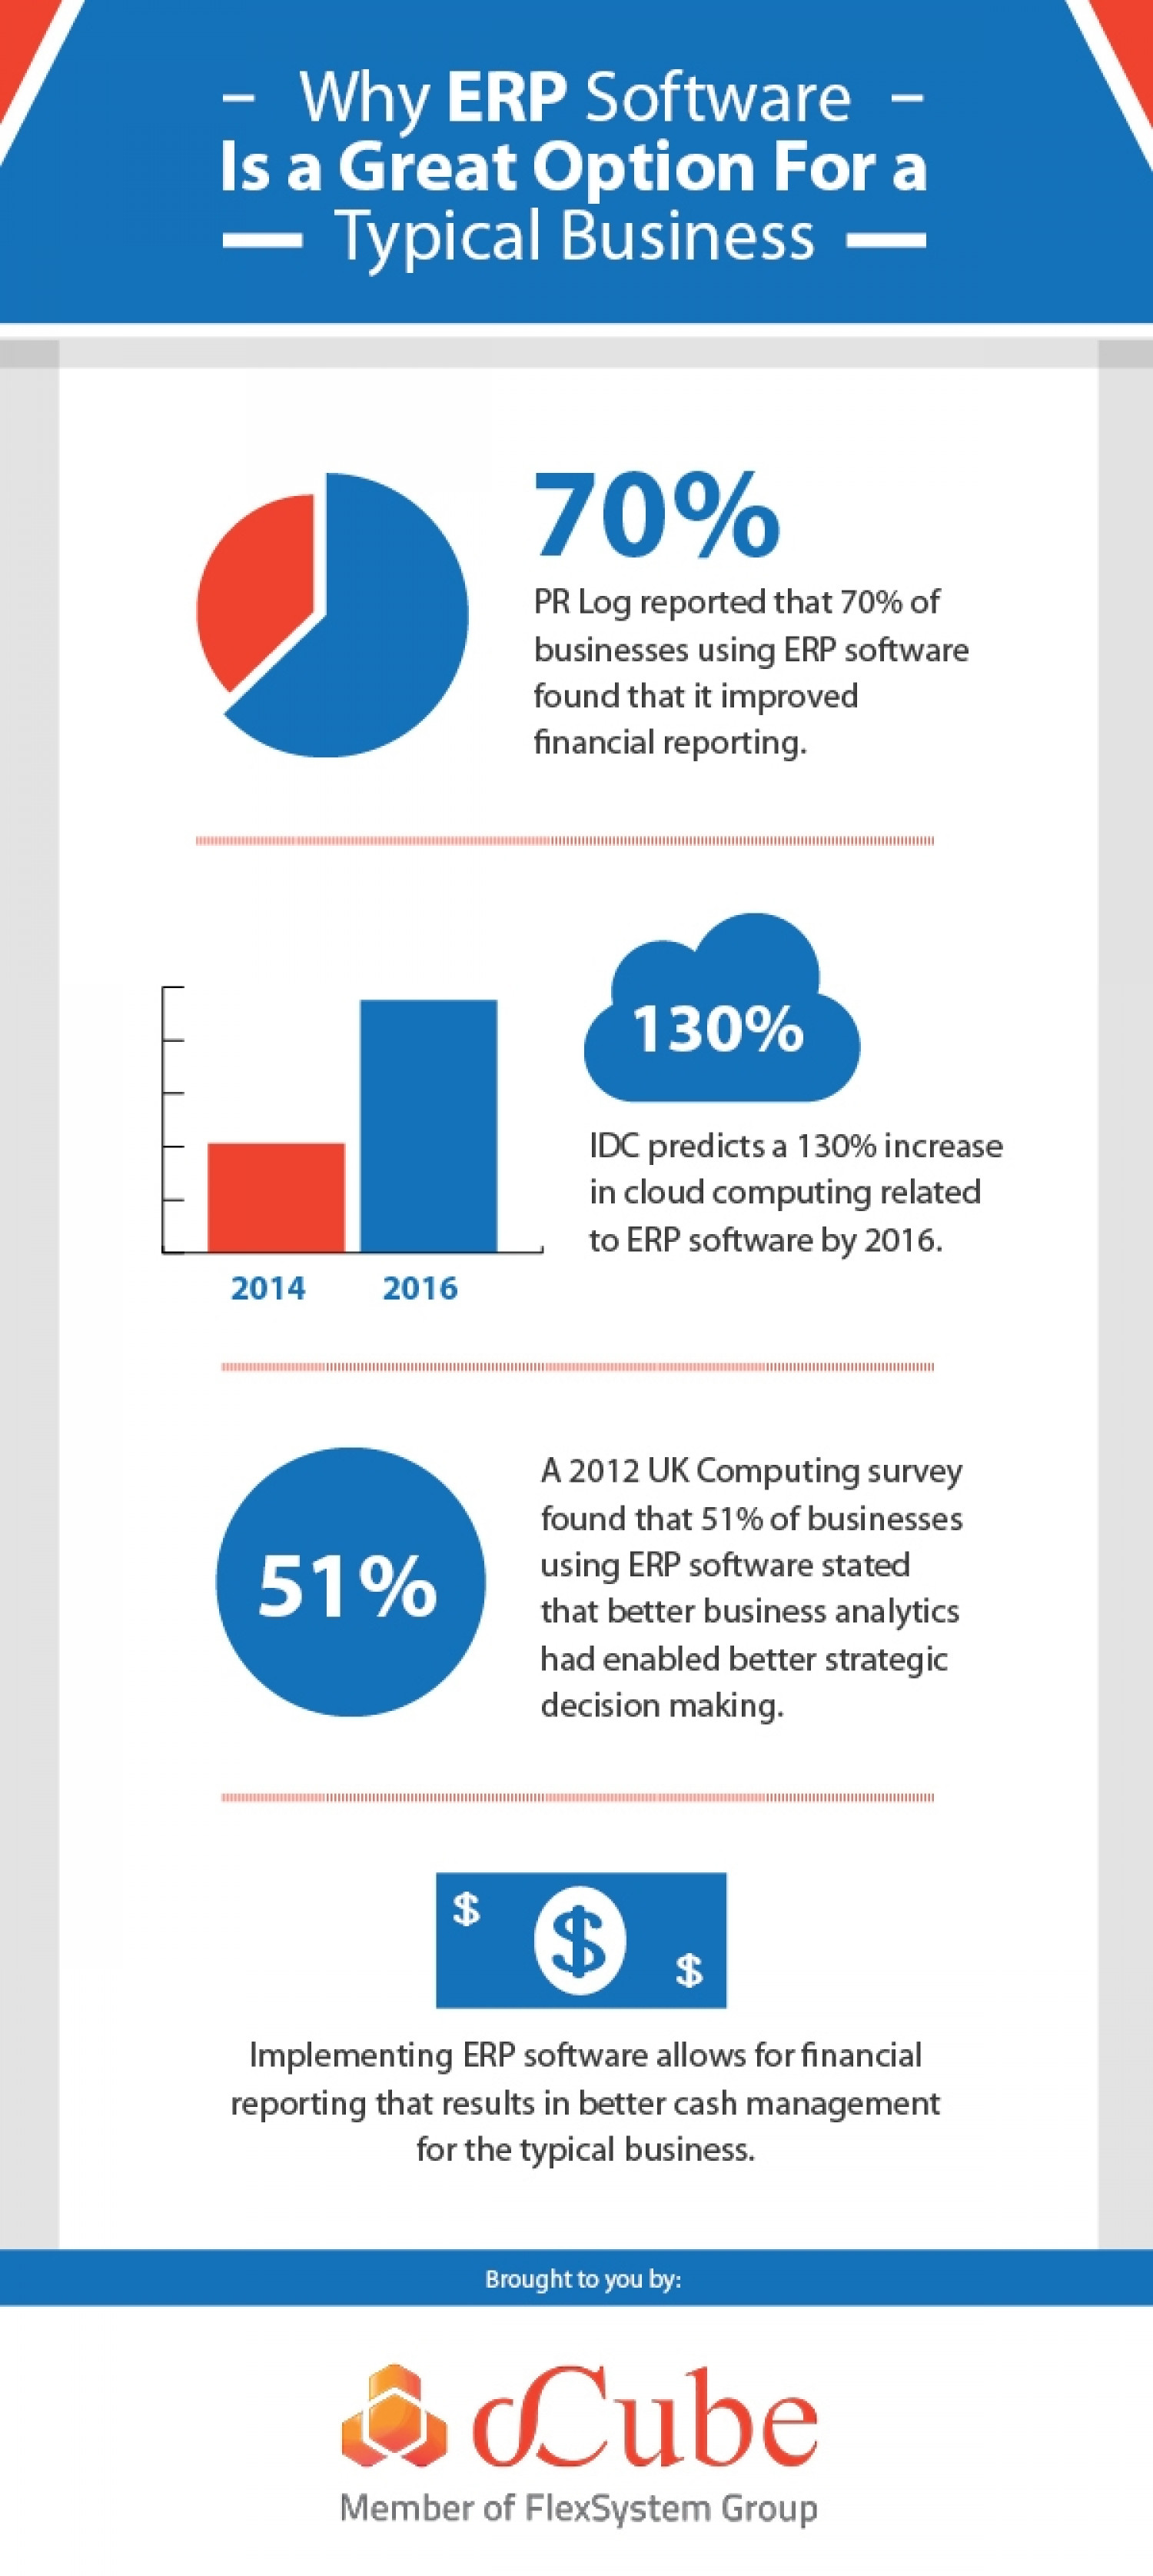 Why ERP Software is a Great Option for a Typical Business Infographic